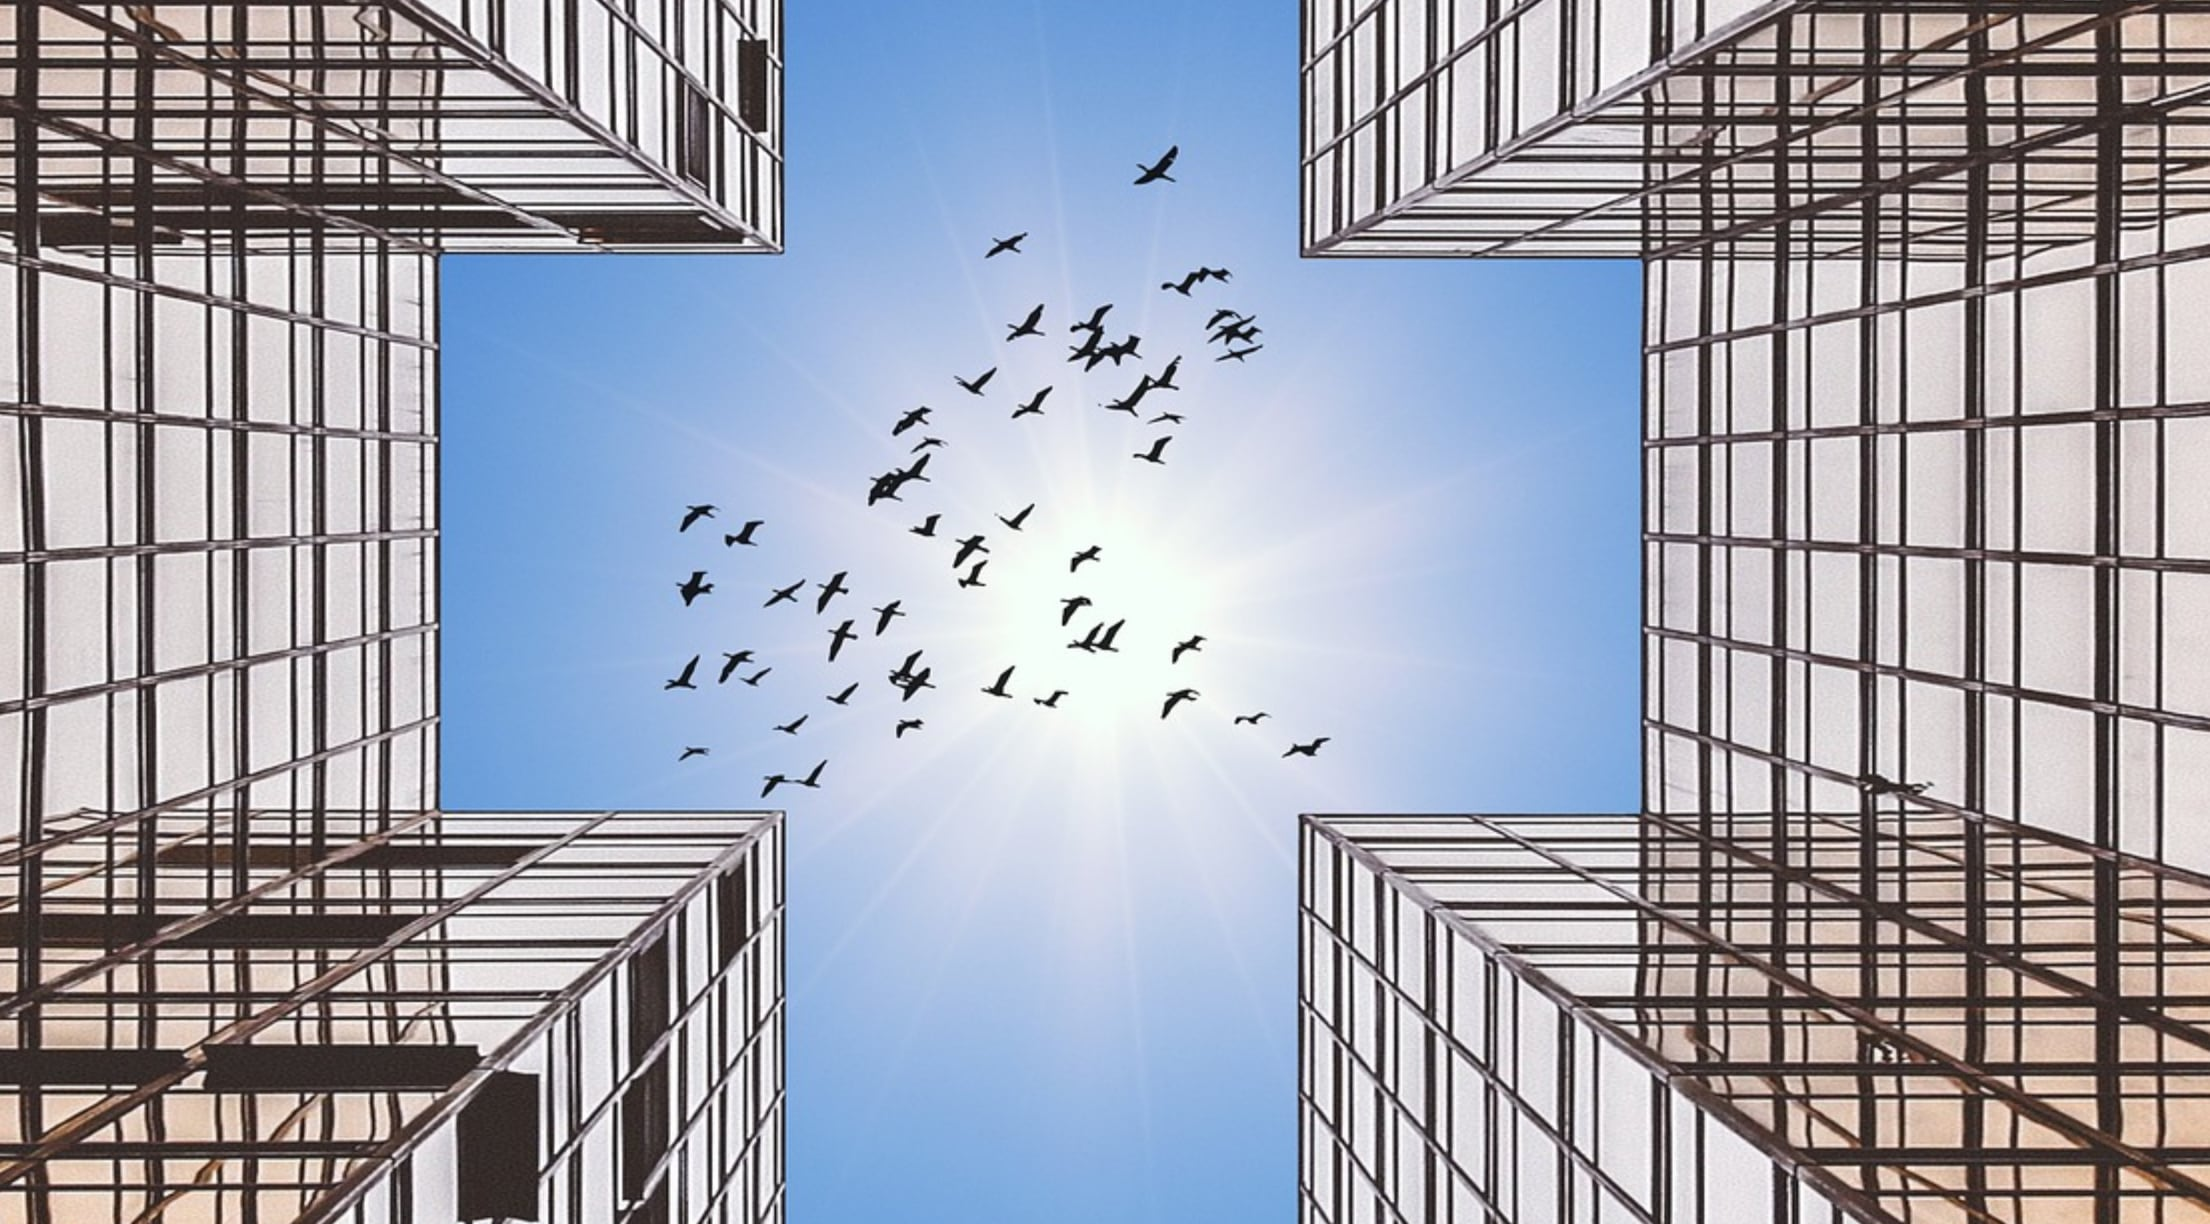 Glass Buildings with Birds